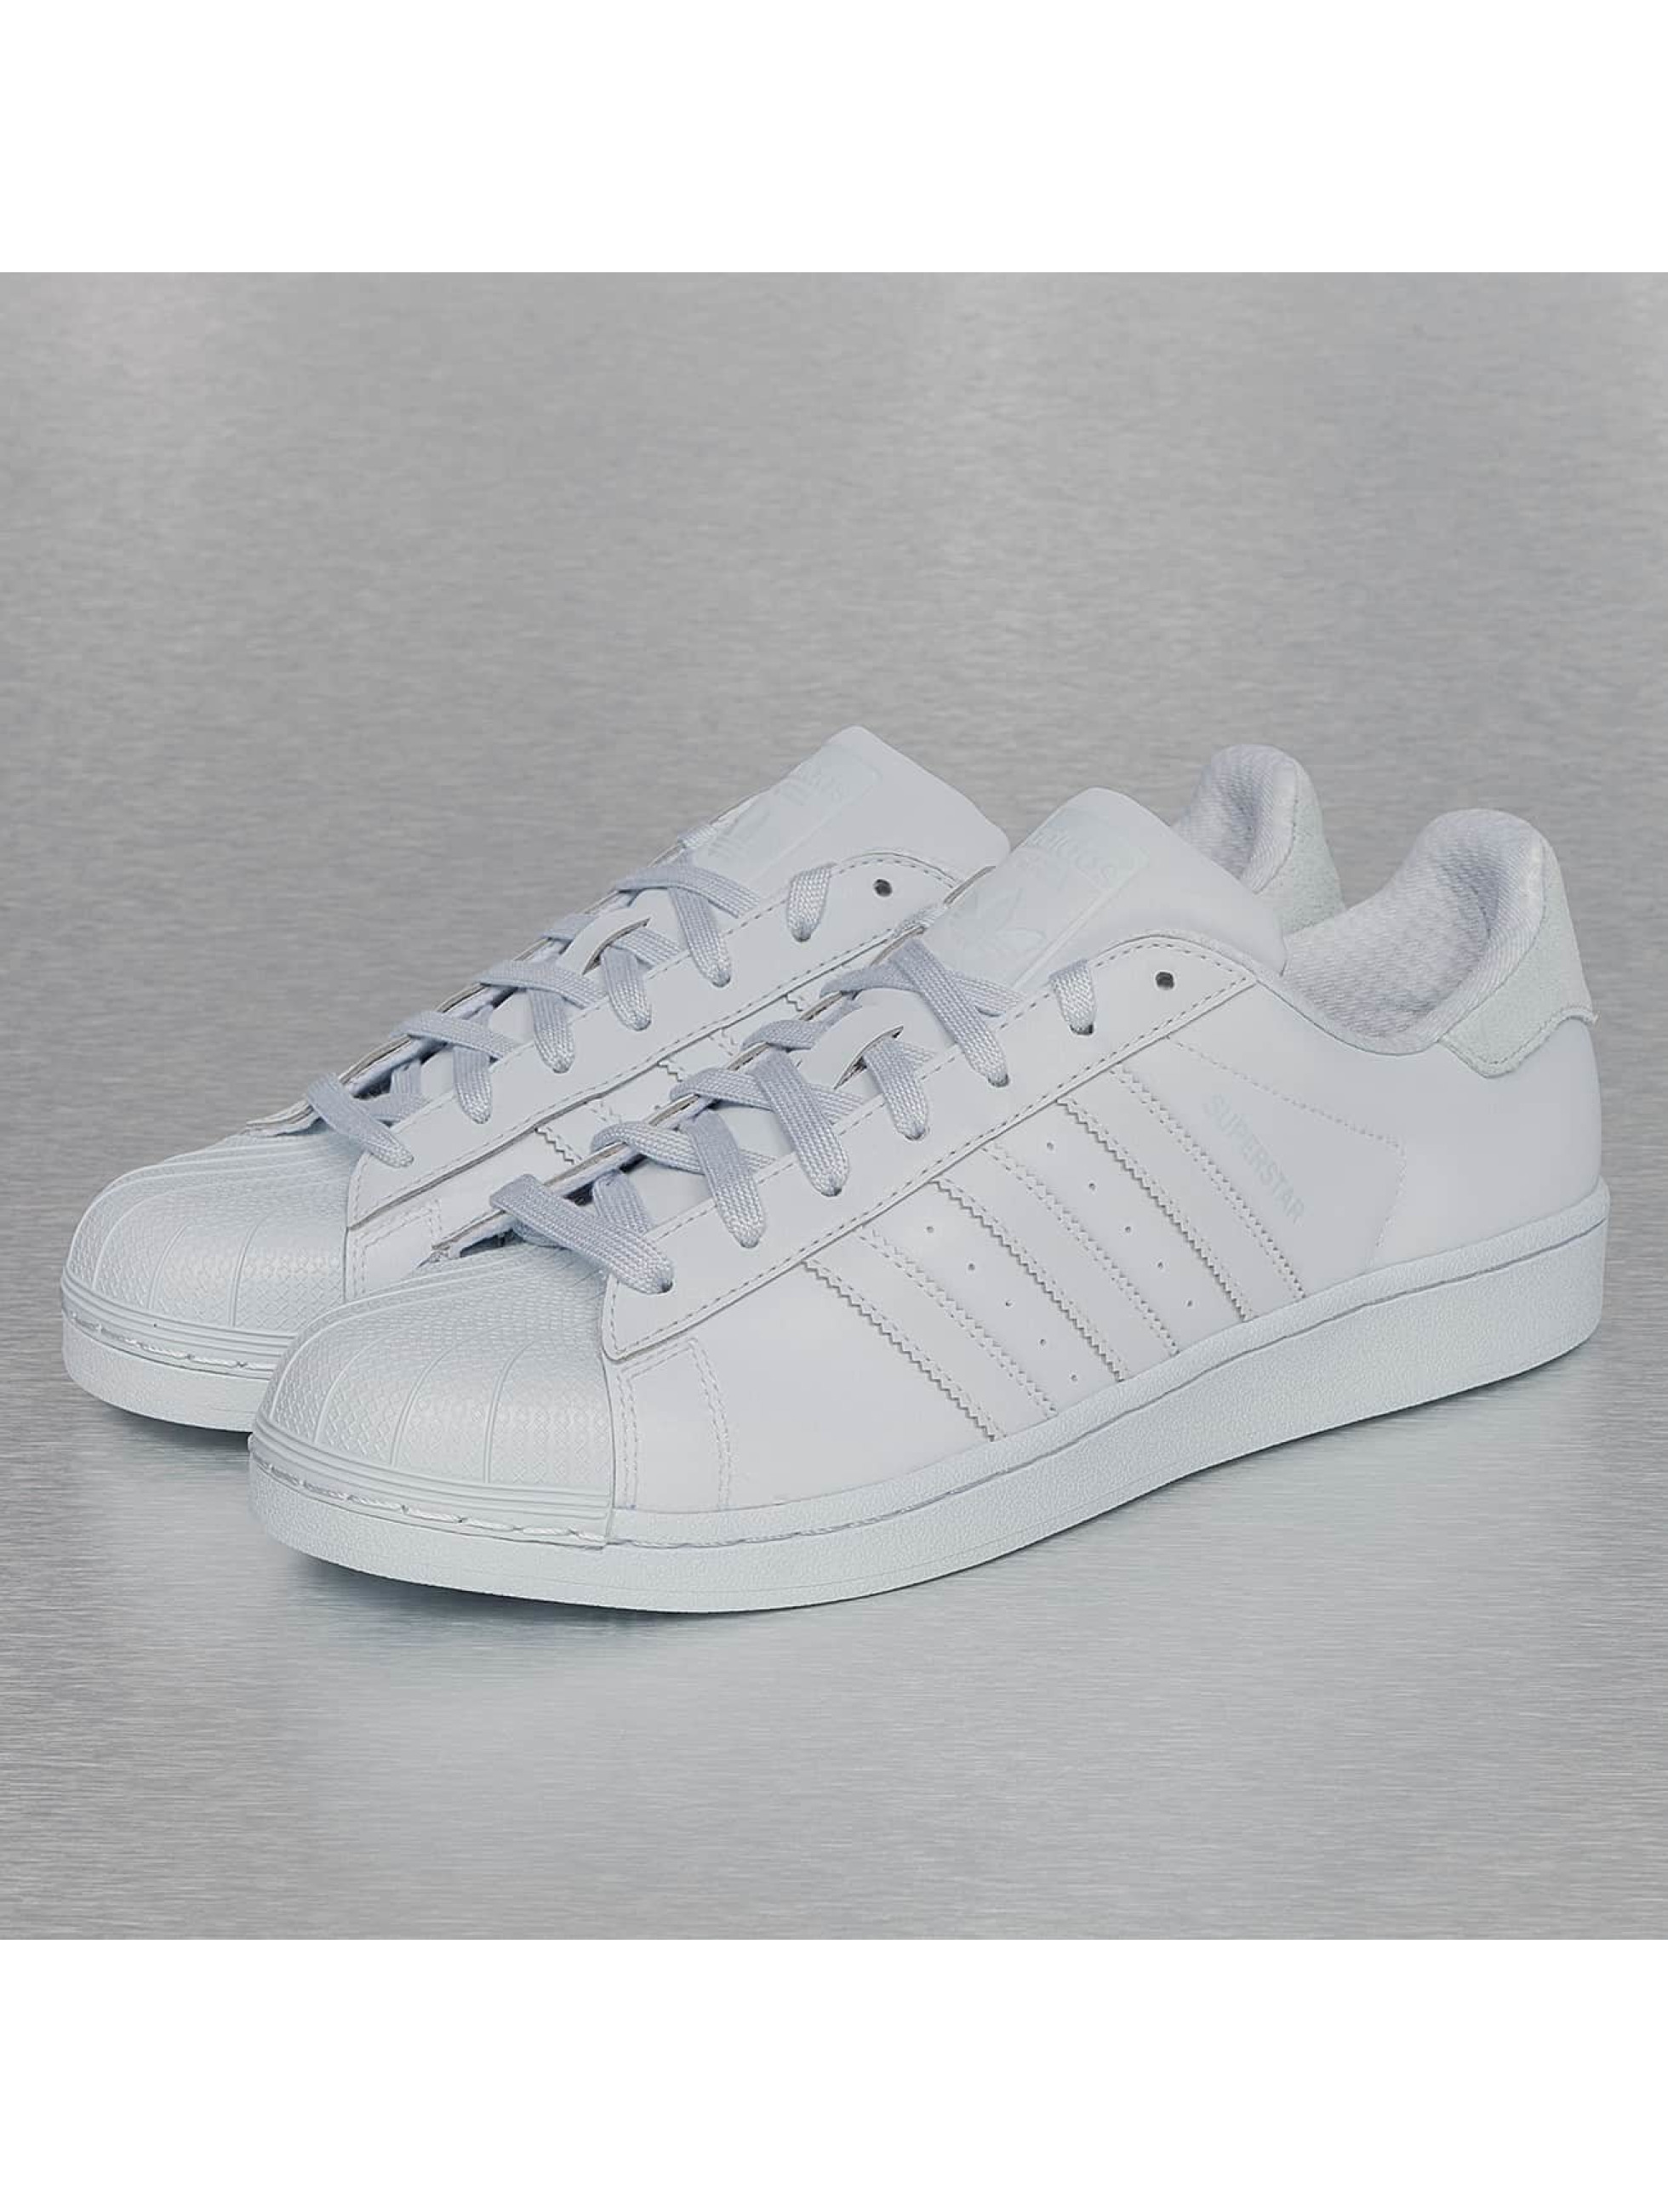 Adidas Superstar Supercolor Hellblau